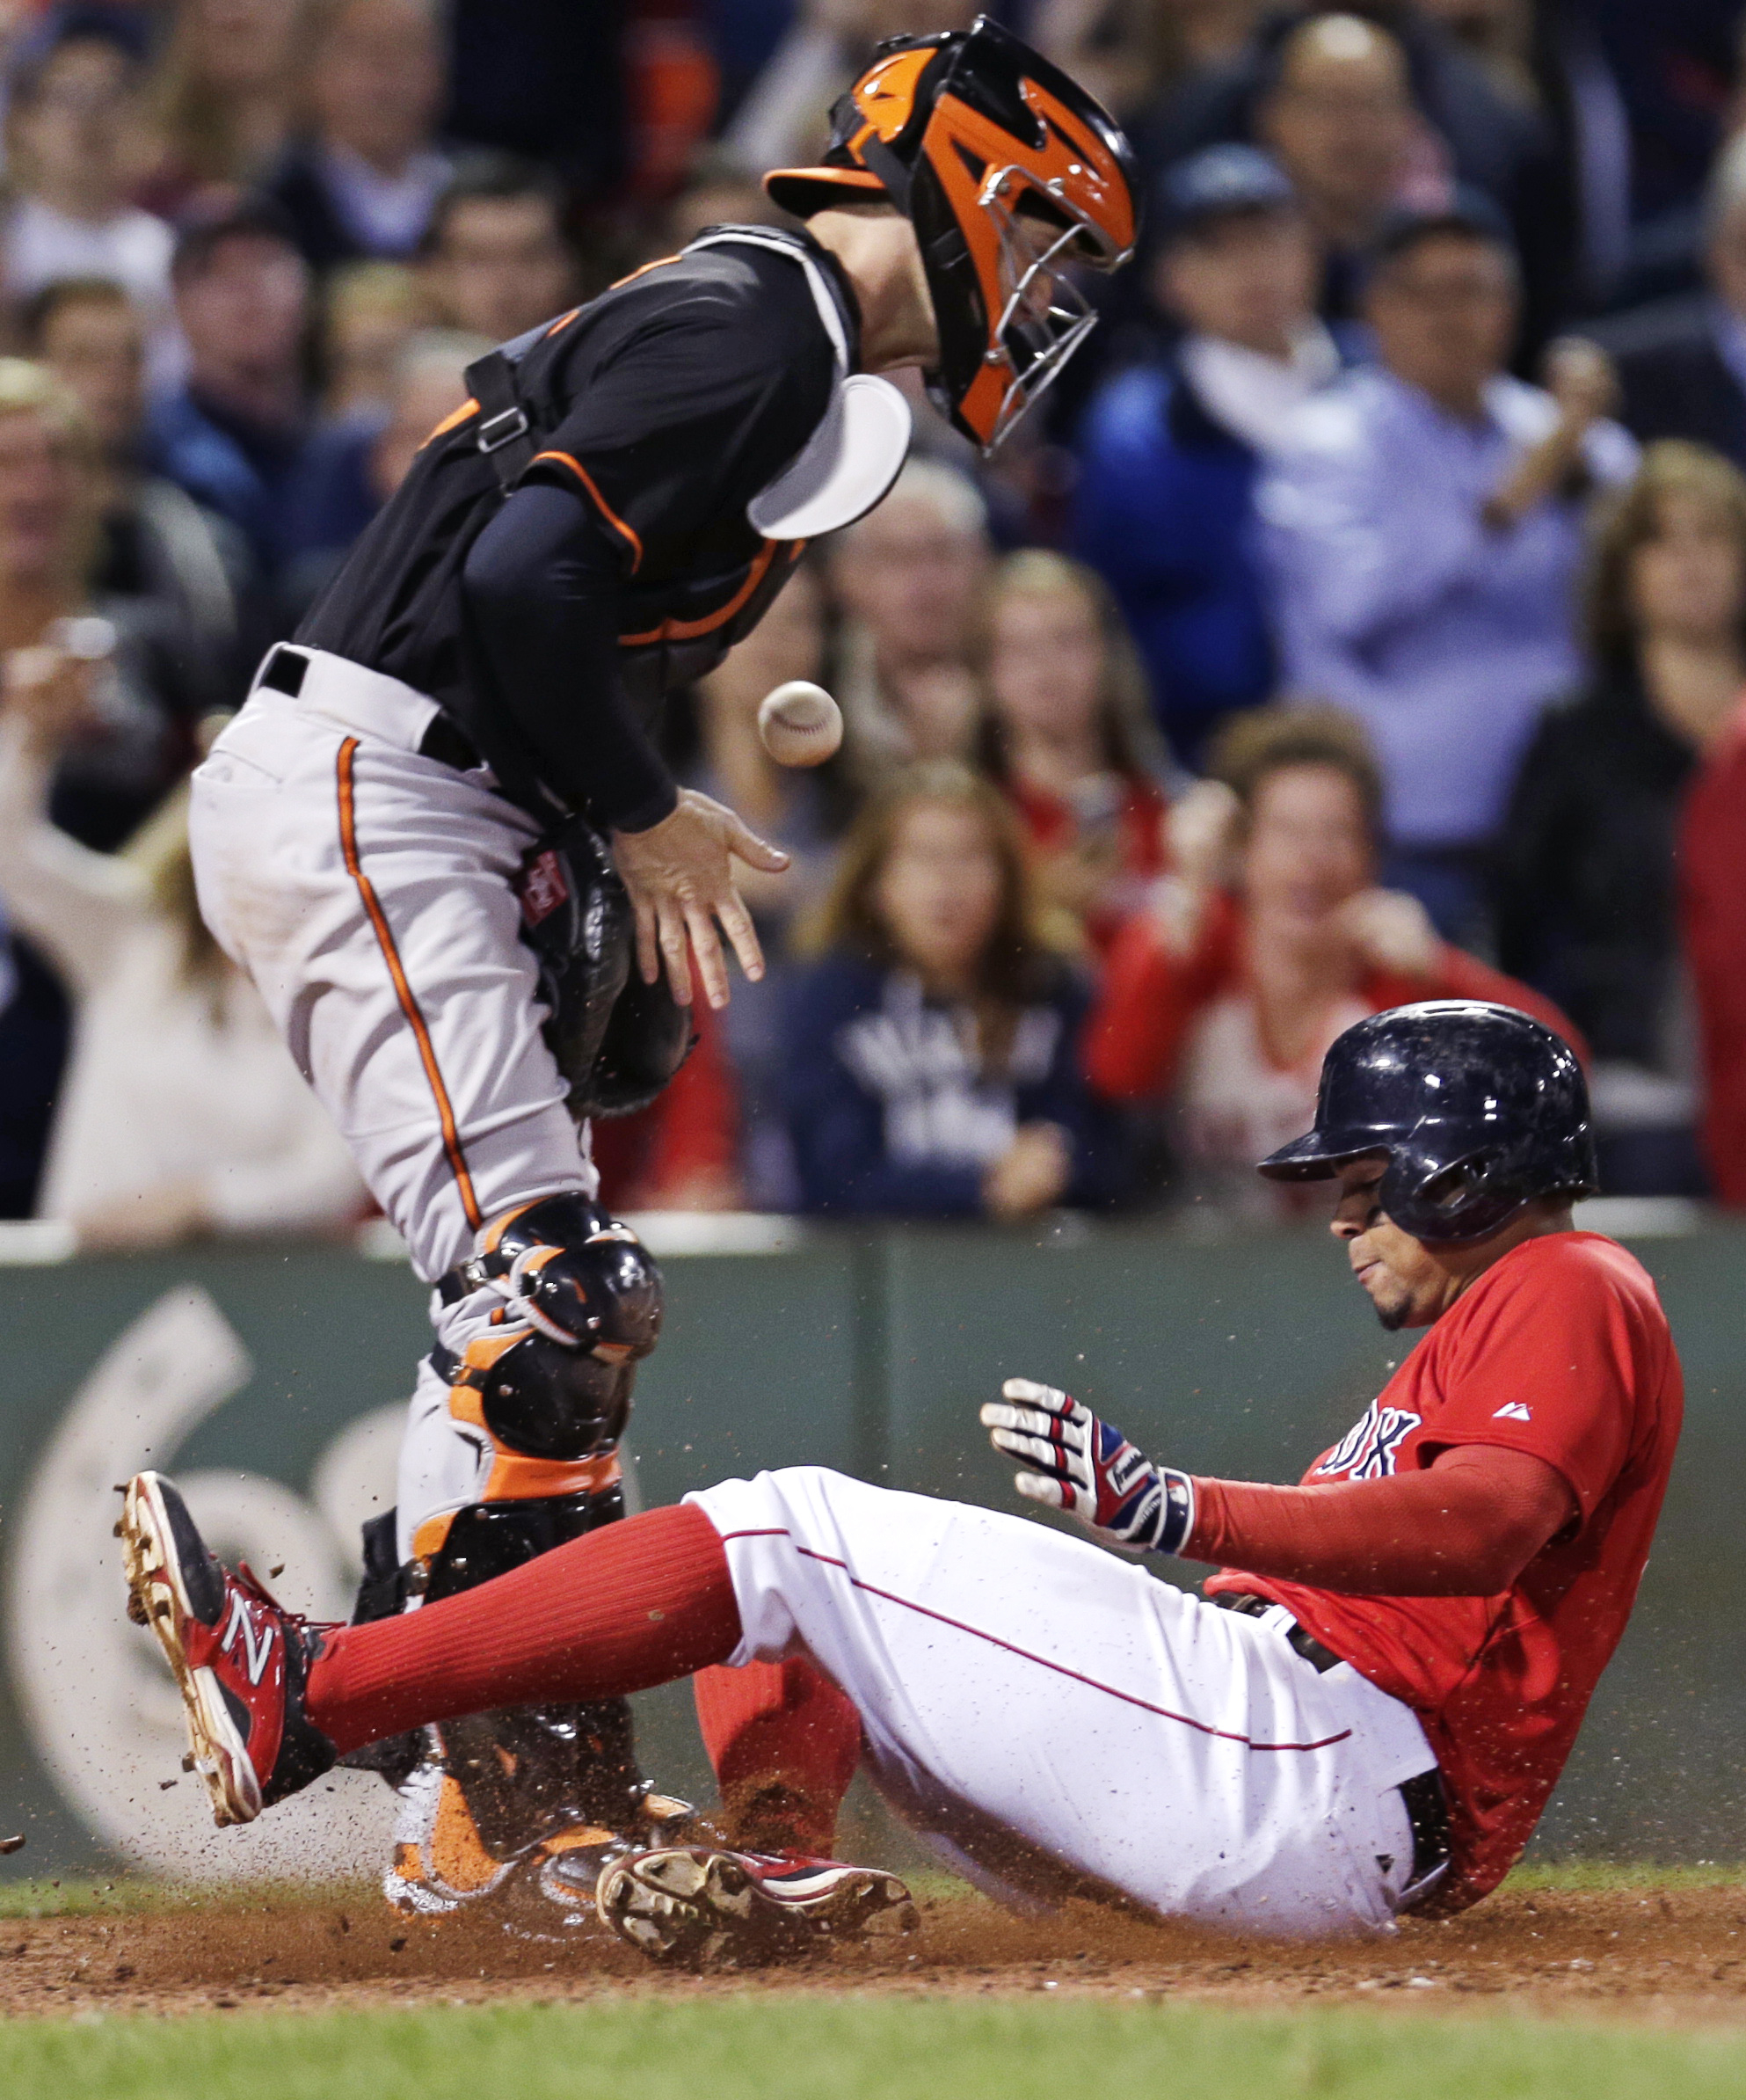 Baltimore Orioles catcher Caleb Joseph loses control of the ball as Boston Red Sox's Xander Bogaerts, right, scores on a double by David Ortiz during the eighth inning of a baseball game at Fenway Park in Boston, Friday, Sept. 25, 2015. (AP Photo/Charles